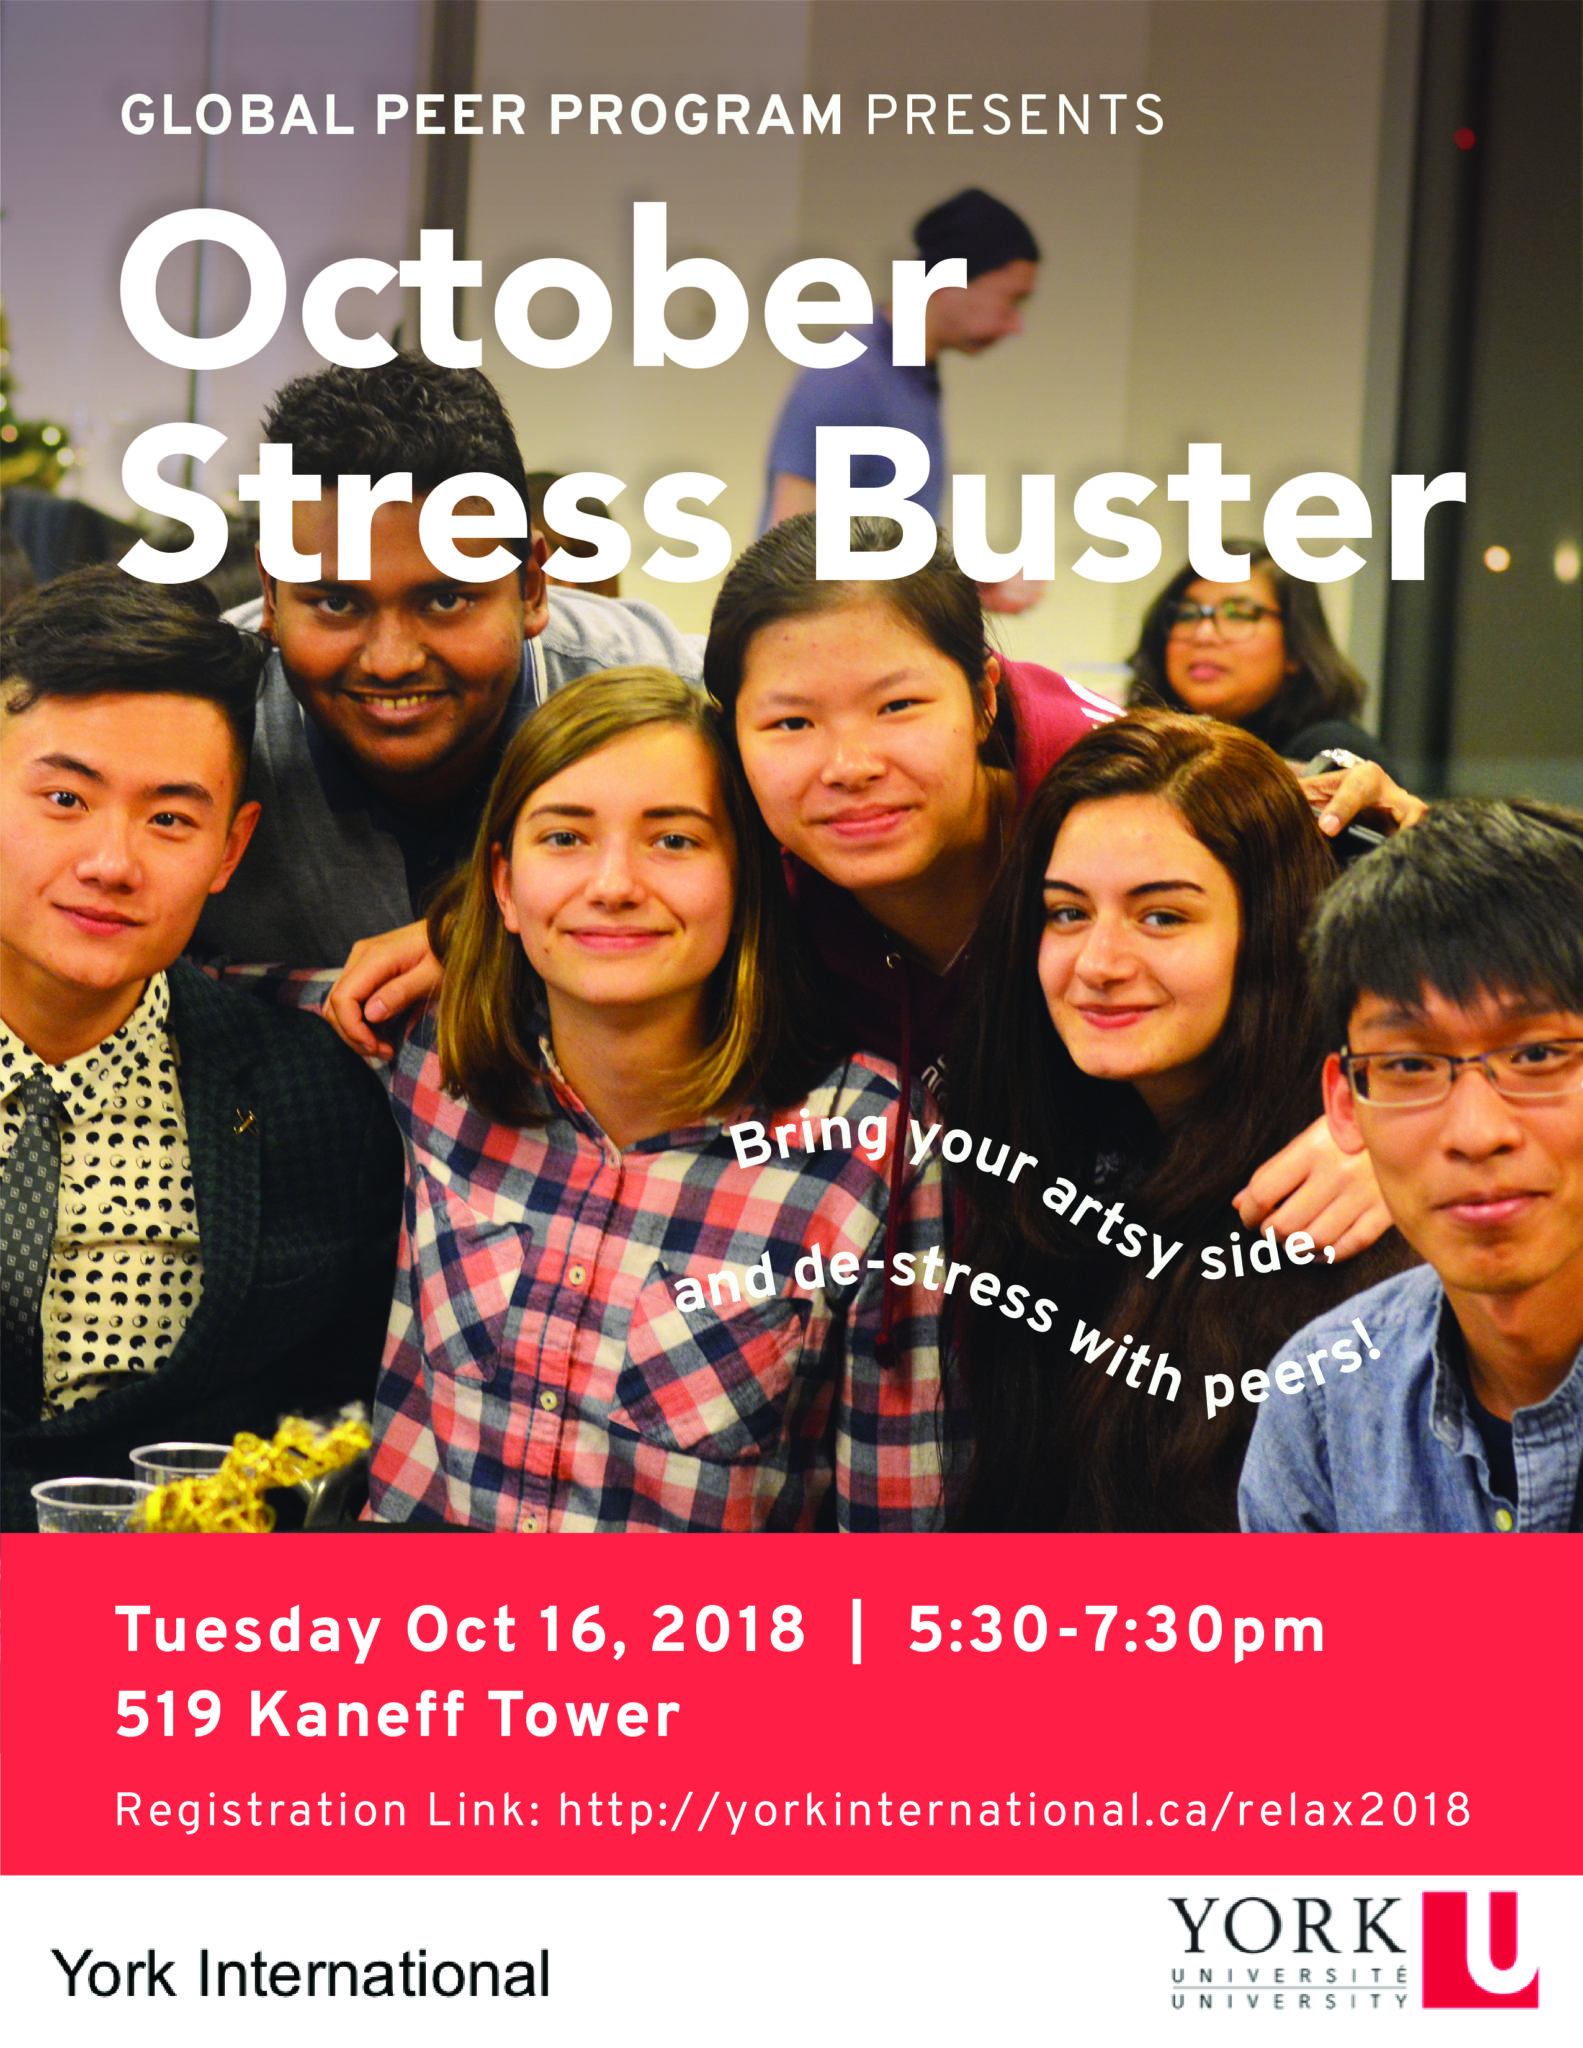 Global Peer Program October Stressbuster @ 519 Kaneff Tower